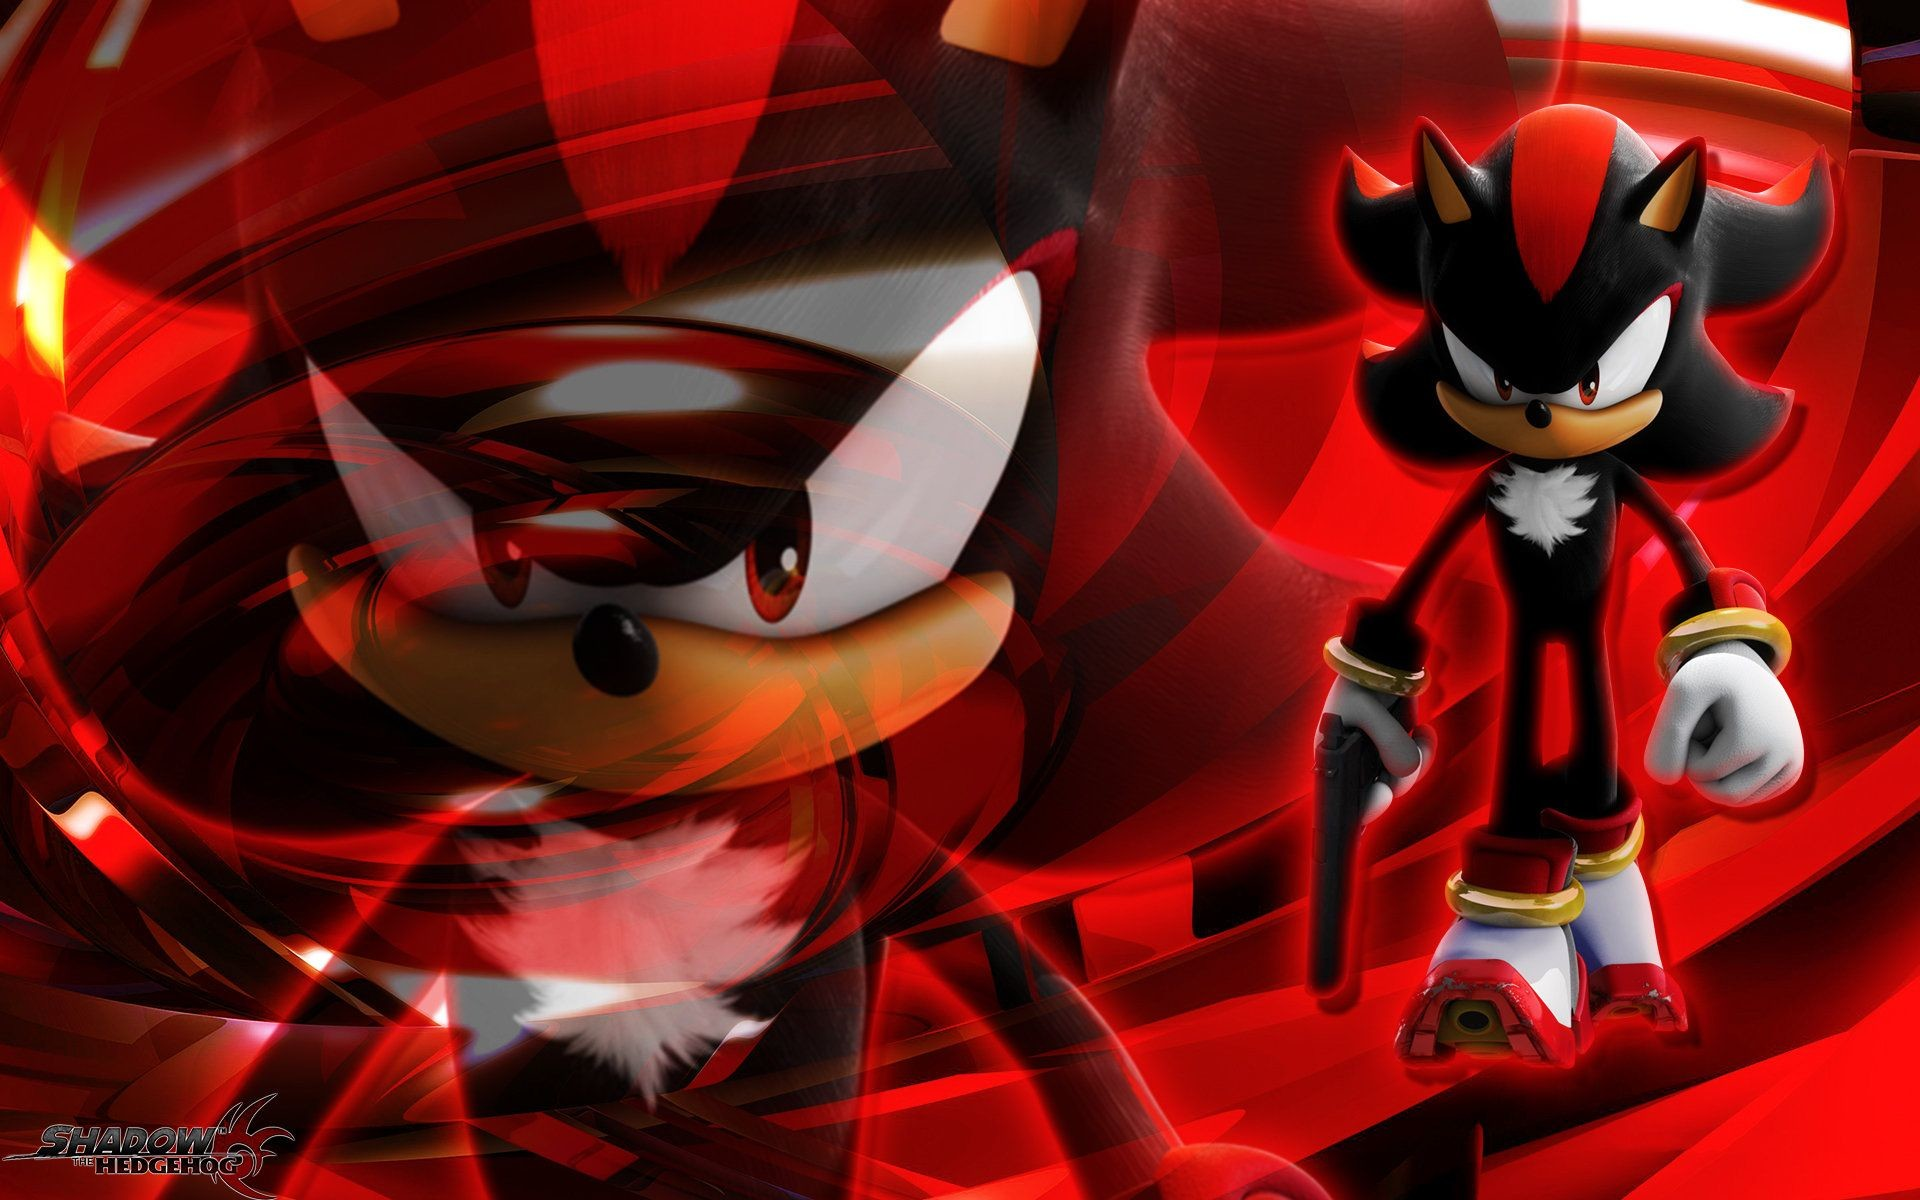 1920x1200 super shadow the hedgehog wallpaper | ... wallpaper other 2013  sonicthehedgehogbg shadow the hedgehog wallpaper